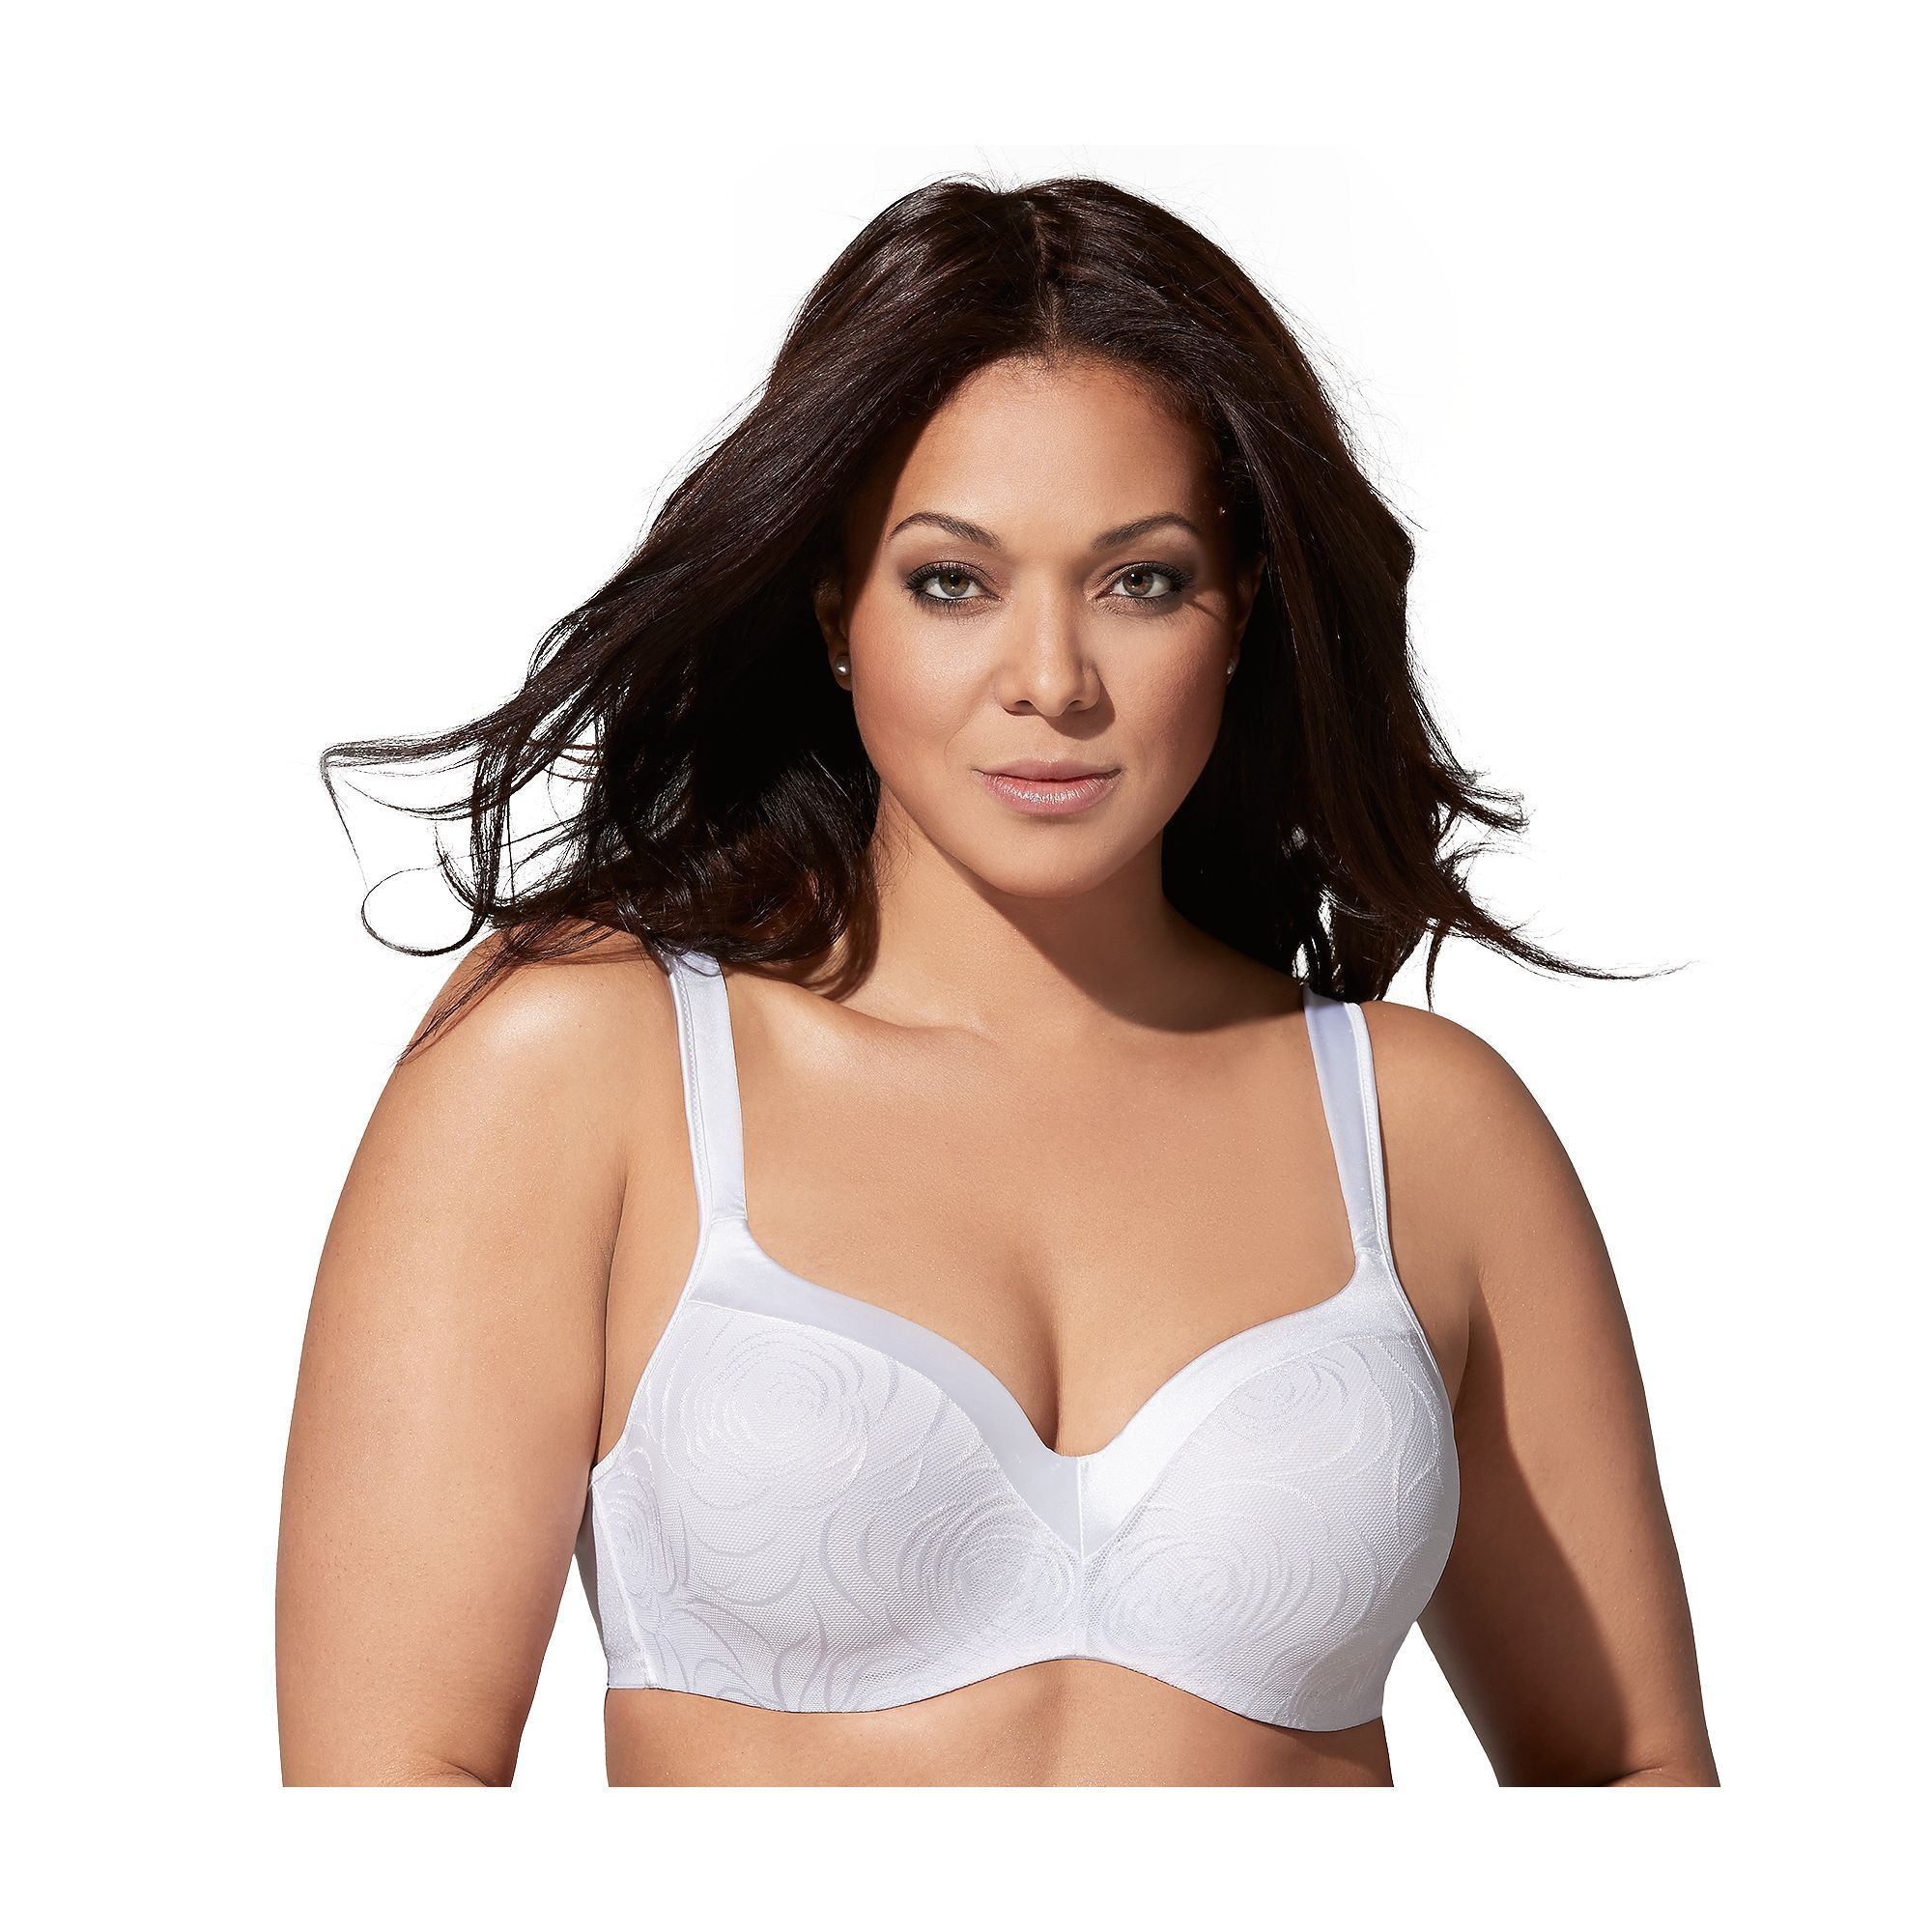 f34eb4c9dc09c Plus Size Playtex Bras  Love My Curves Body Revelation Jacquard Full-Figure  Balconette Bra 4823